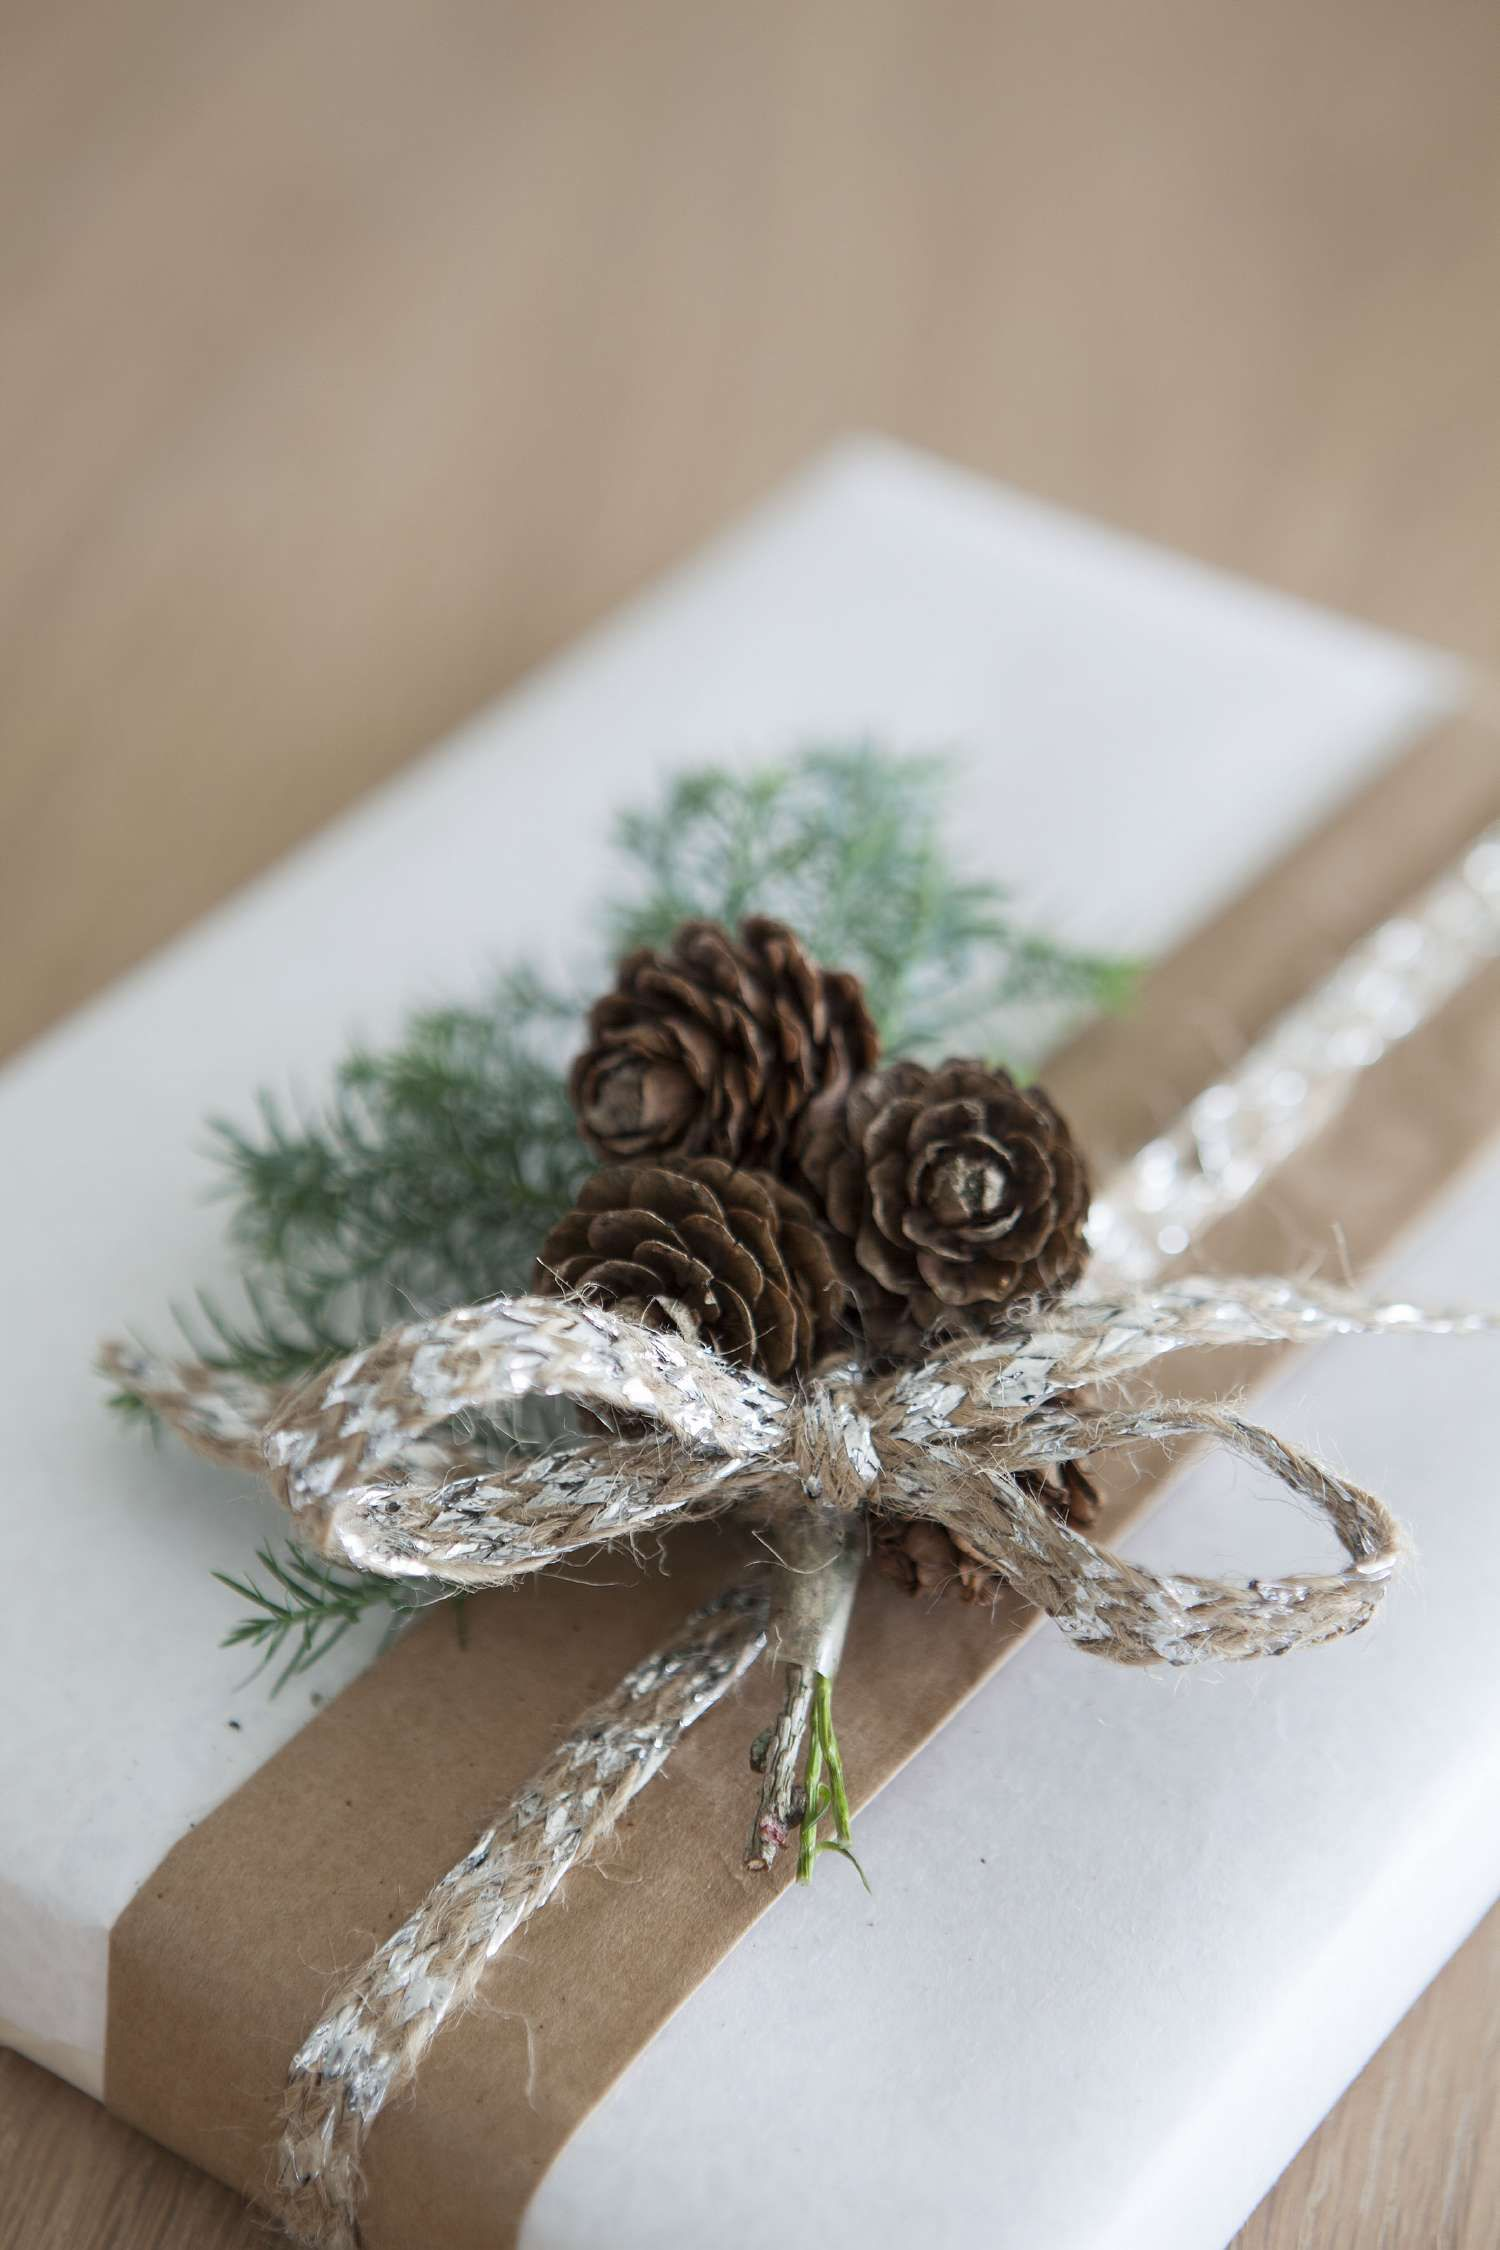 757c68091037 Natures gift wrapping